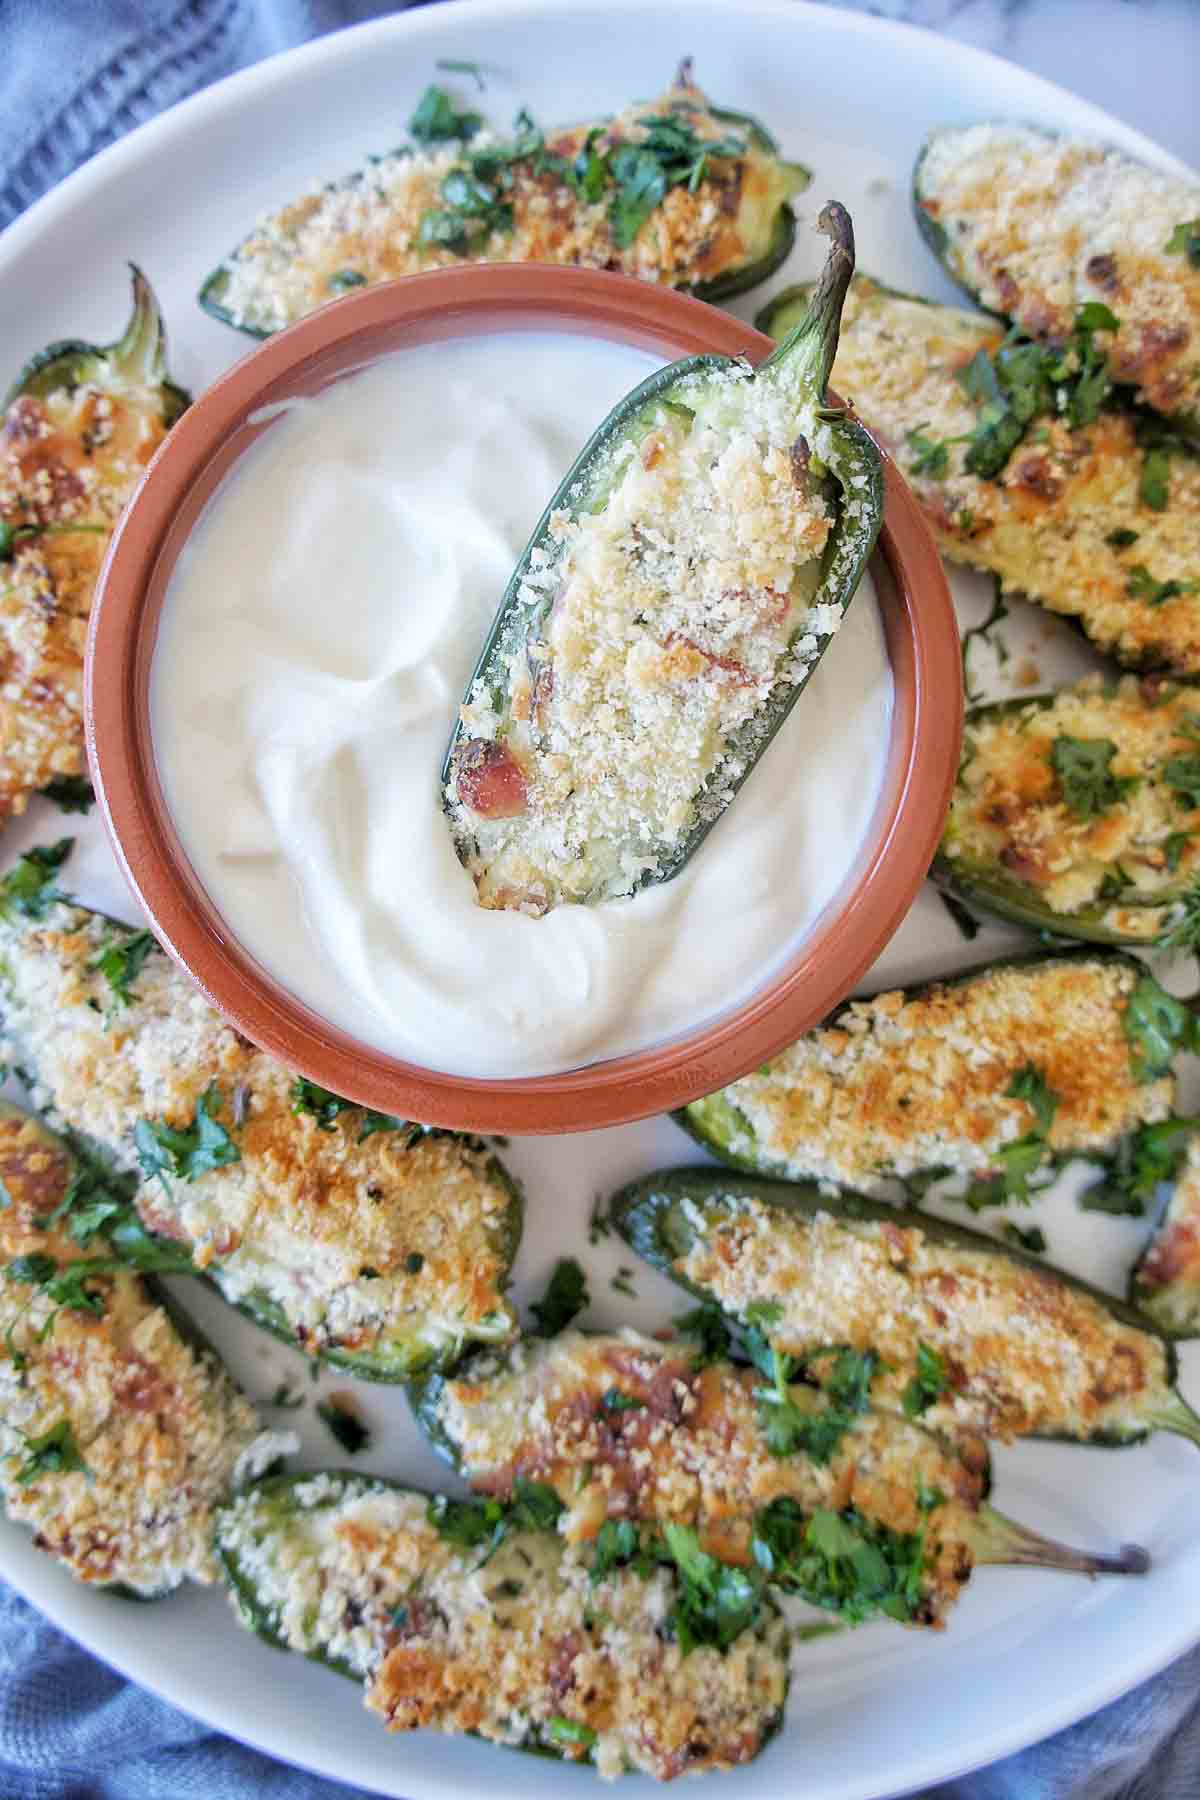 Jalapeno popper being dipped into greek yoghurt on large platter